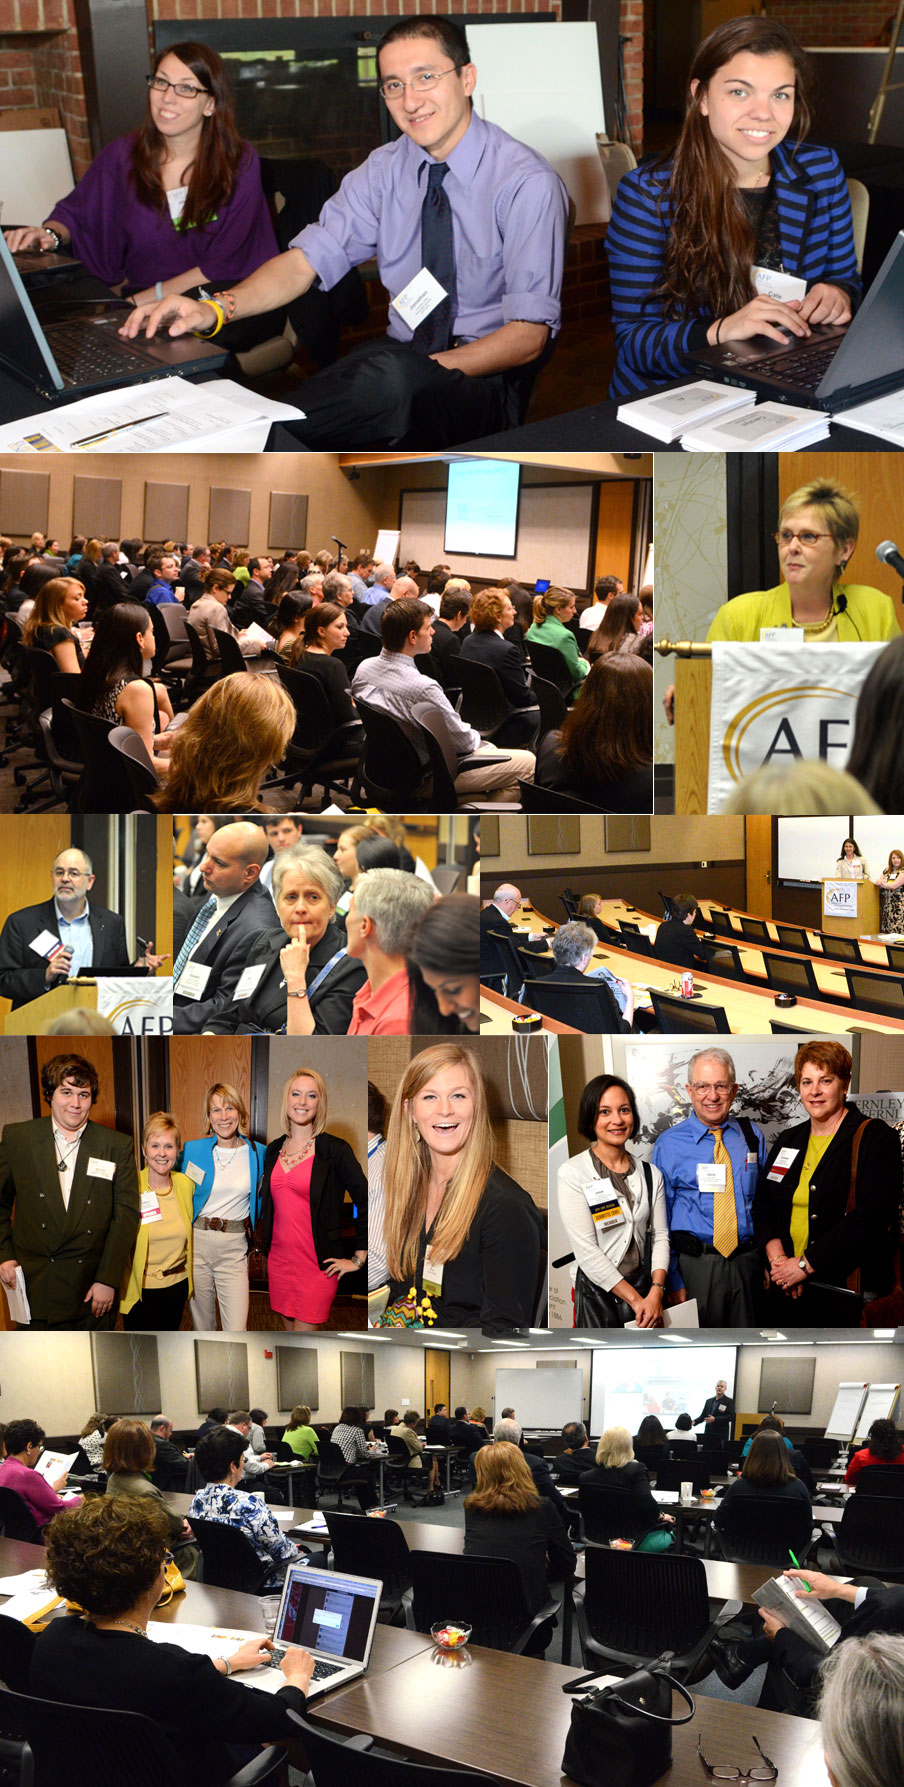 association of meeting professional Meeting professionals international is the largest meeting planner and event planner industry association worldwide we are dedicated to education and networking opportunities for meeting planning professionals.